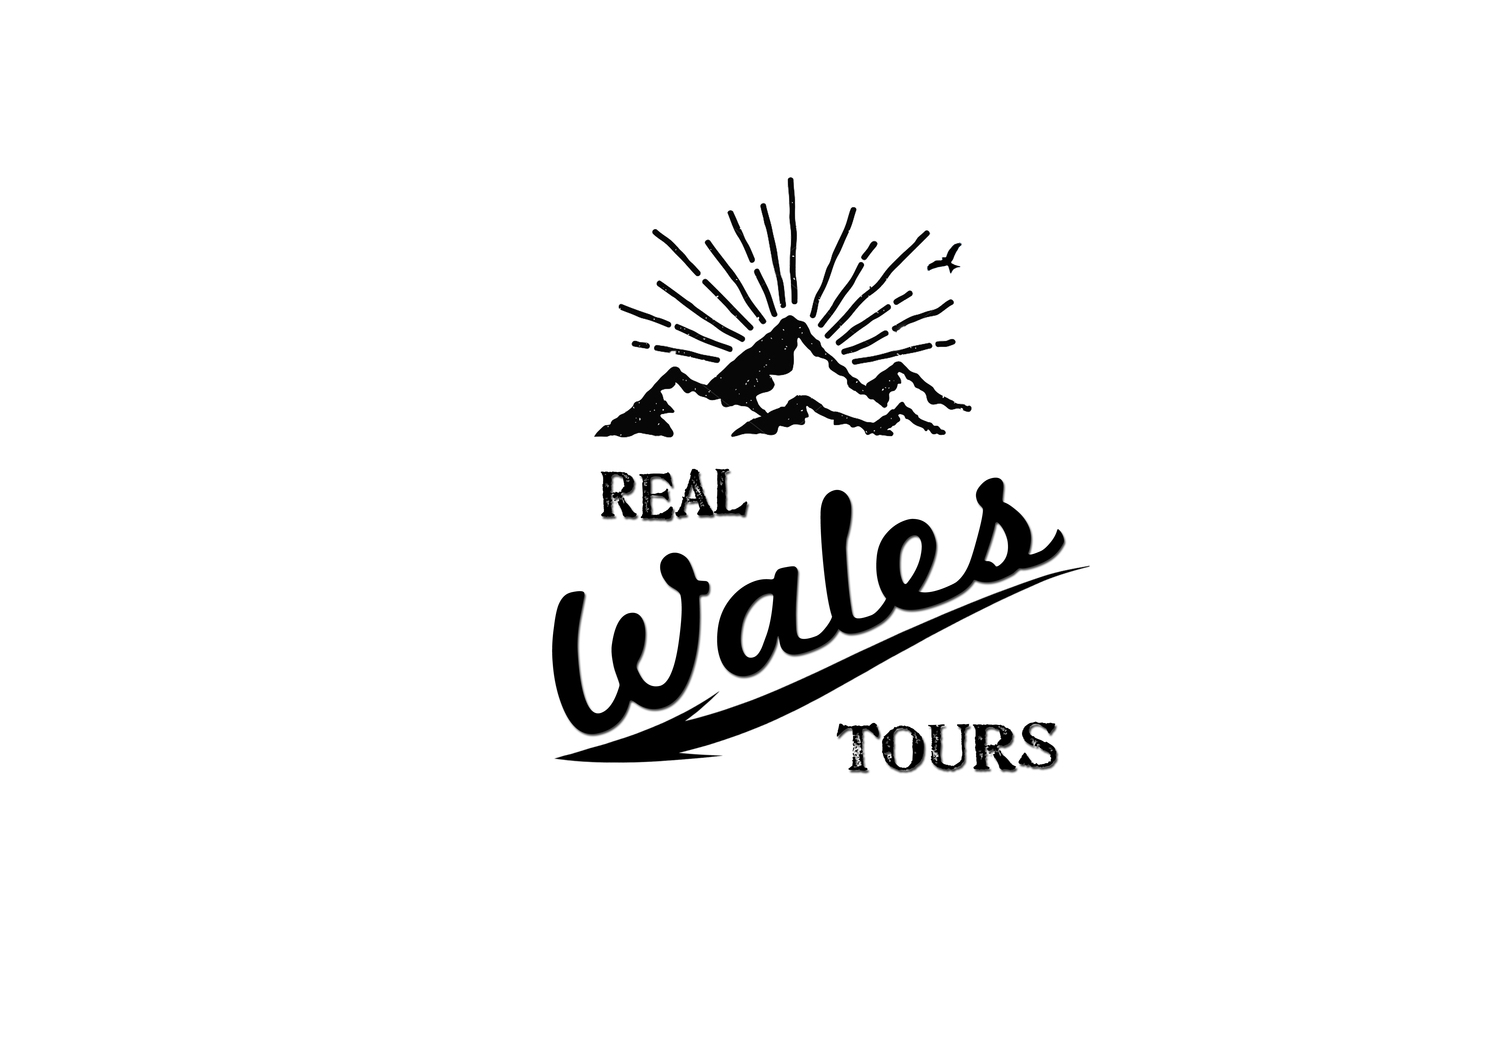 Real Wales Tours